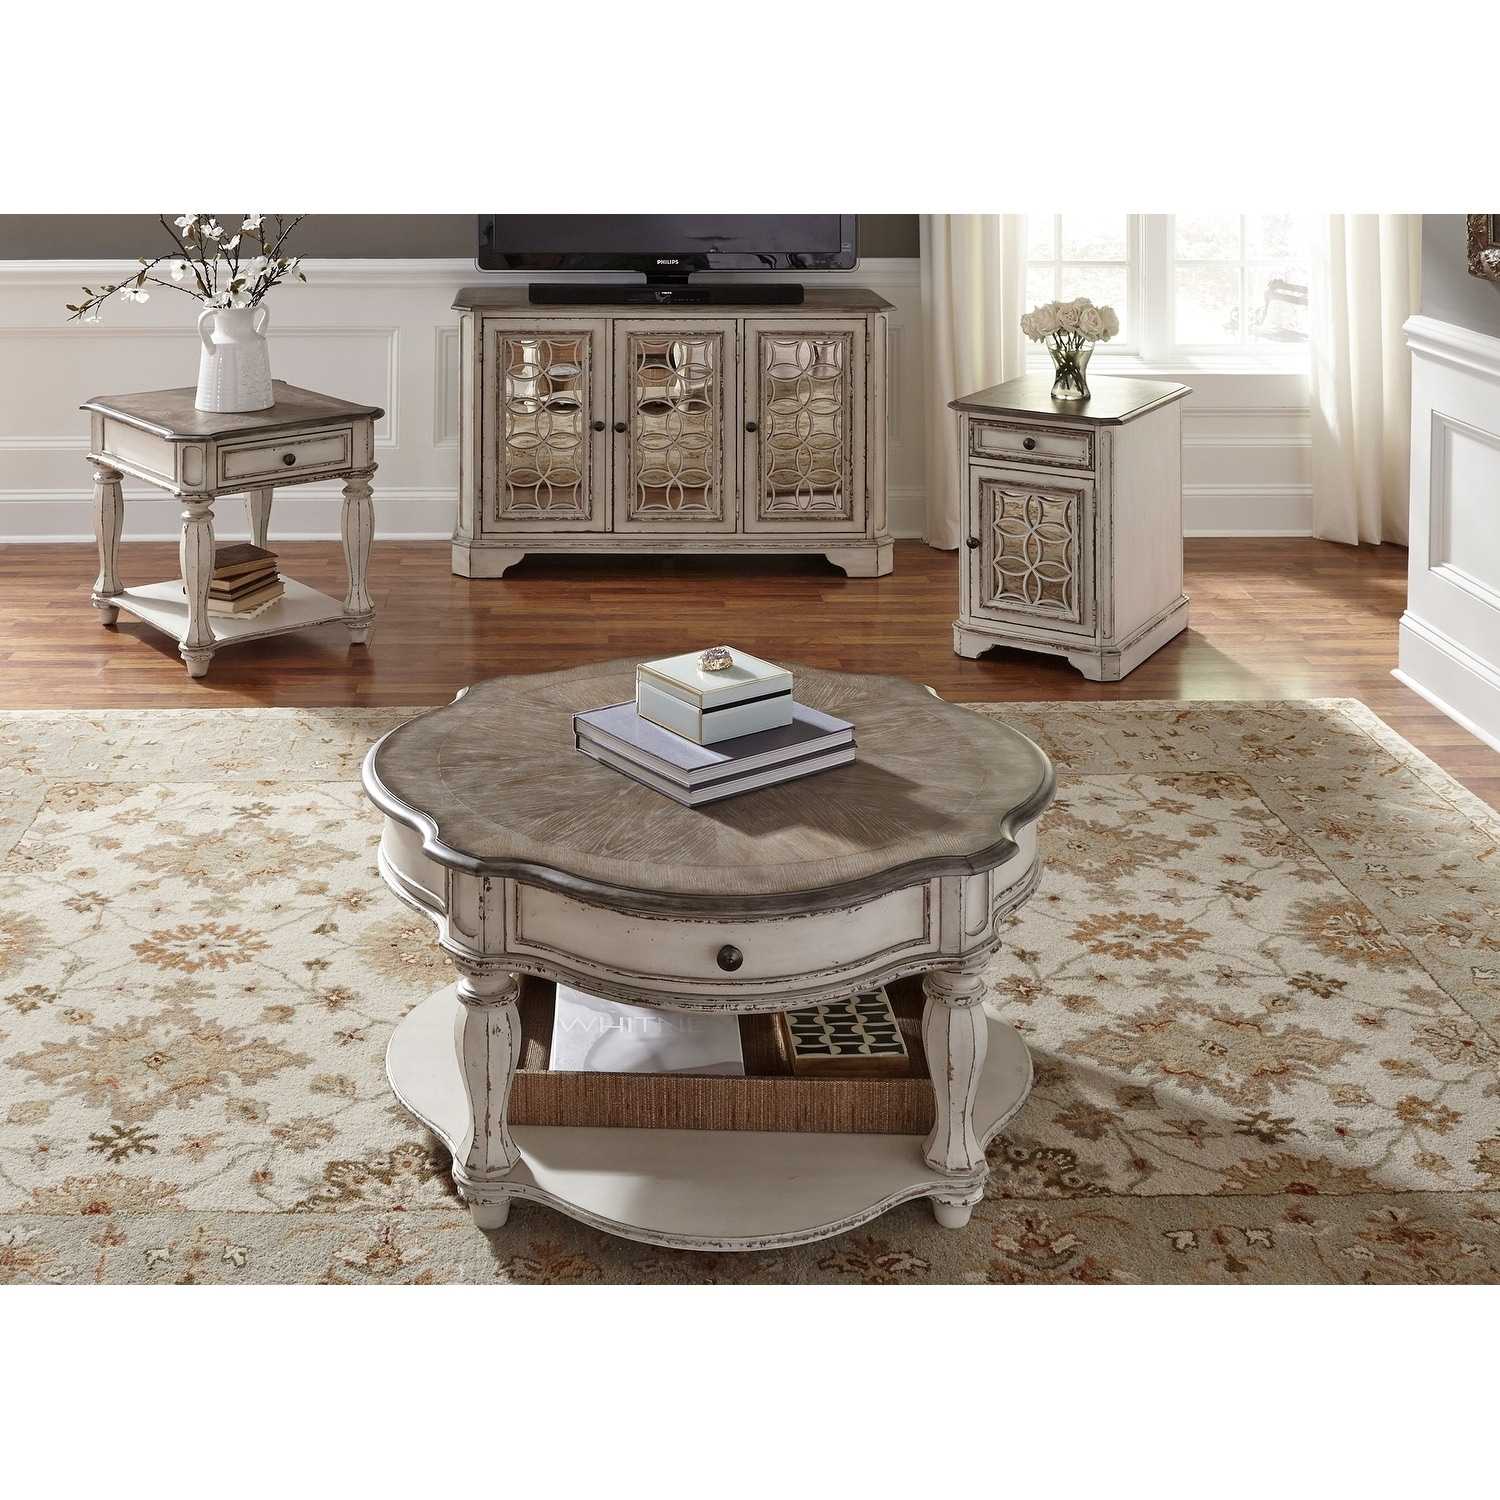 Excellent Magnolia Manor Antique White Optional Table 3 Piece Set Gmtry Best Dining Table And Chair Ideas Images Gmtryco